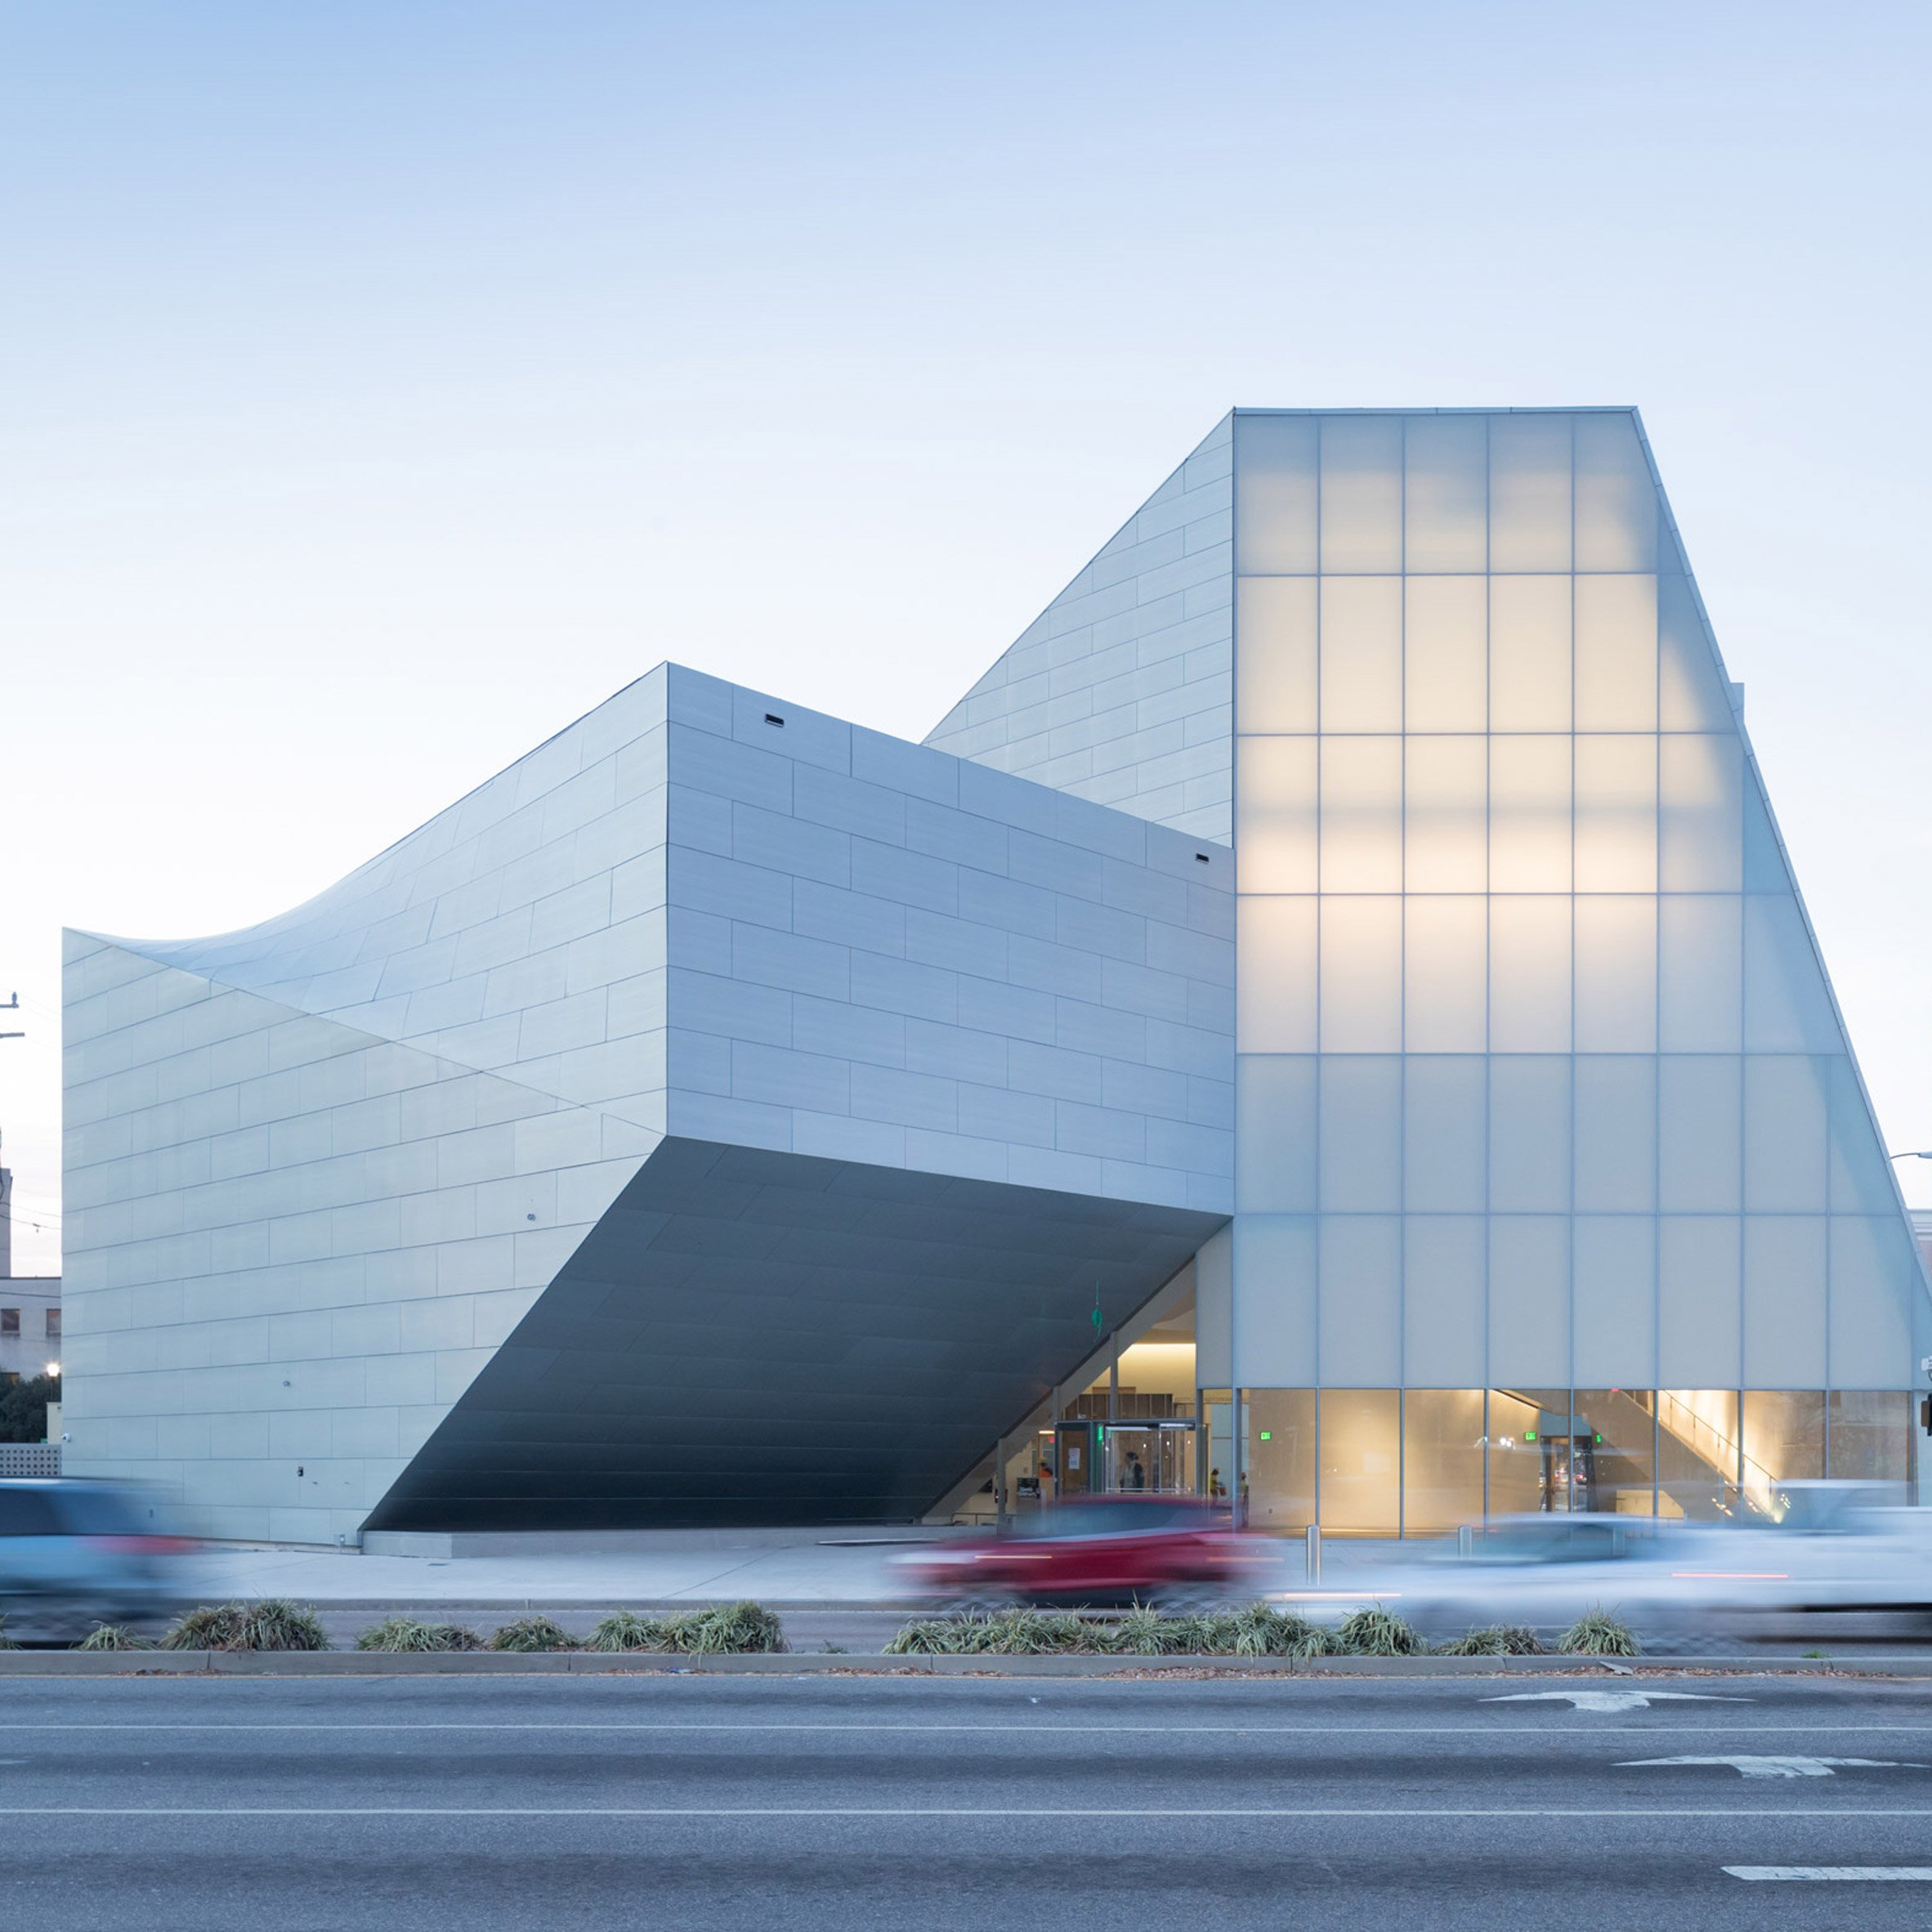 Incroyable Steven Hollu0027s Institute For Contemporary Art Comprises Sculptural Blocks Of  Zinc And Translucent Glass